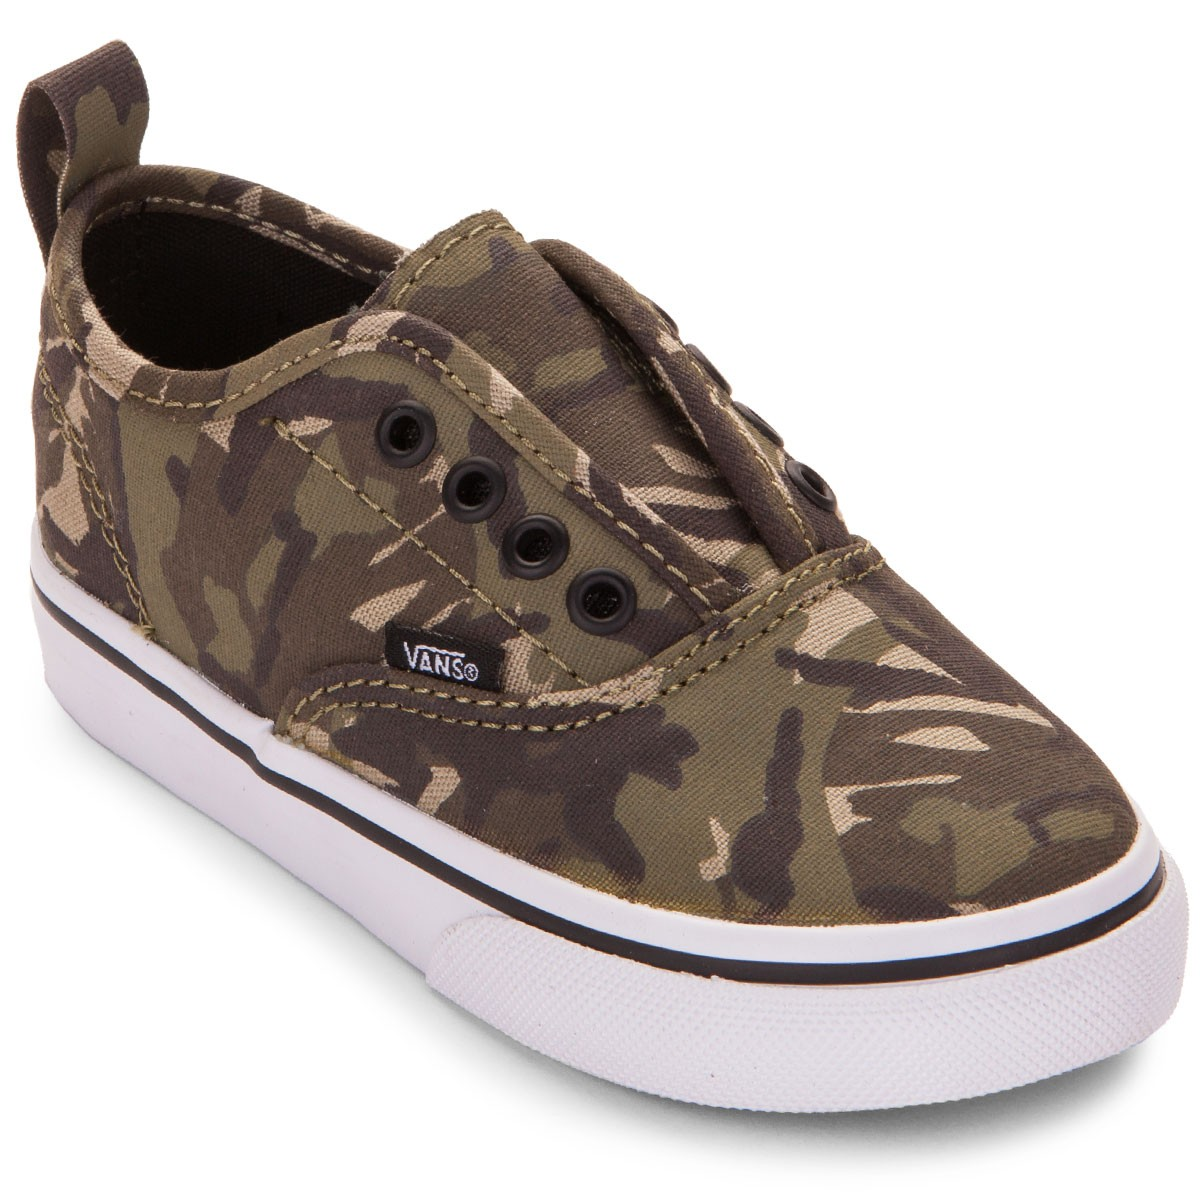 ebddfa50bc Vans Authentic Toddler Little Kid Shoes - Camo Olive True White - 4.0